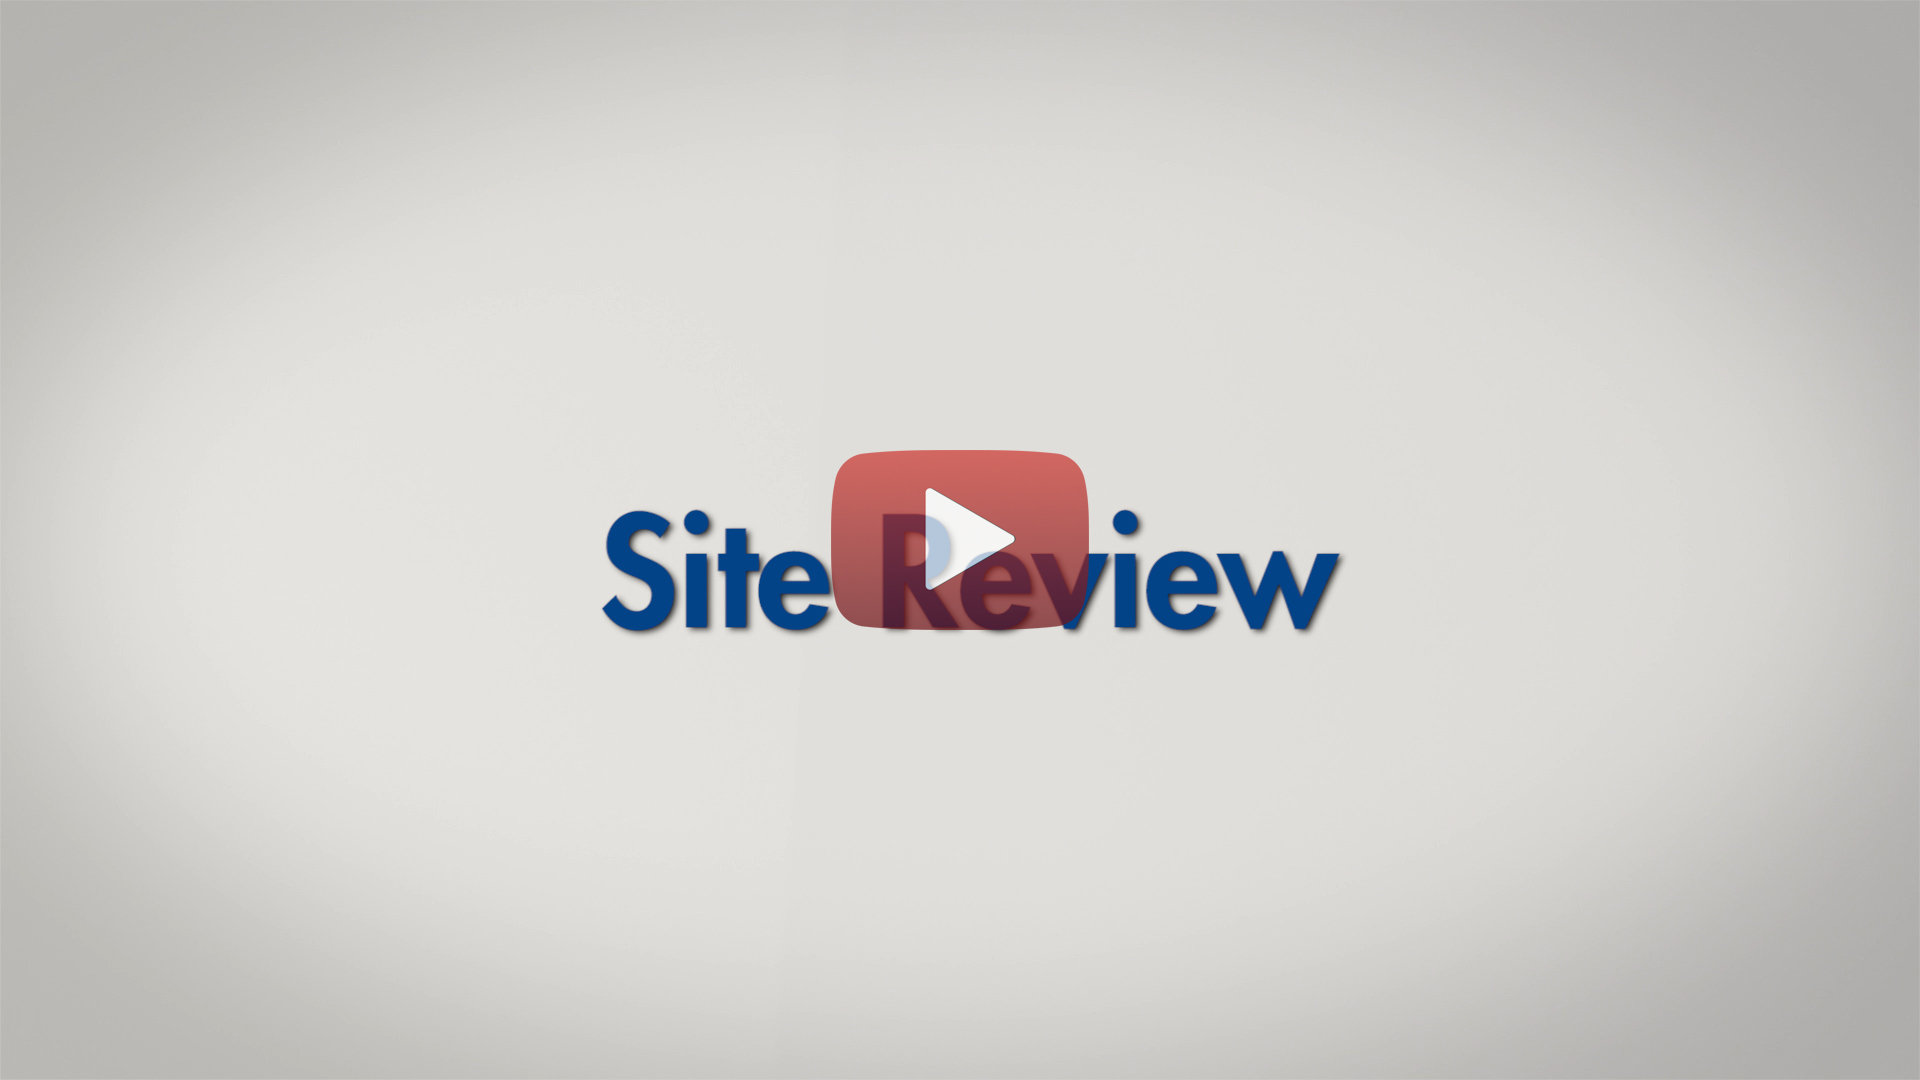 Site Review